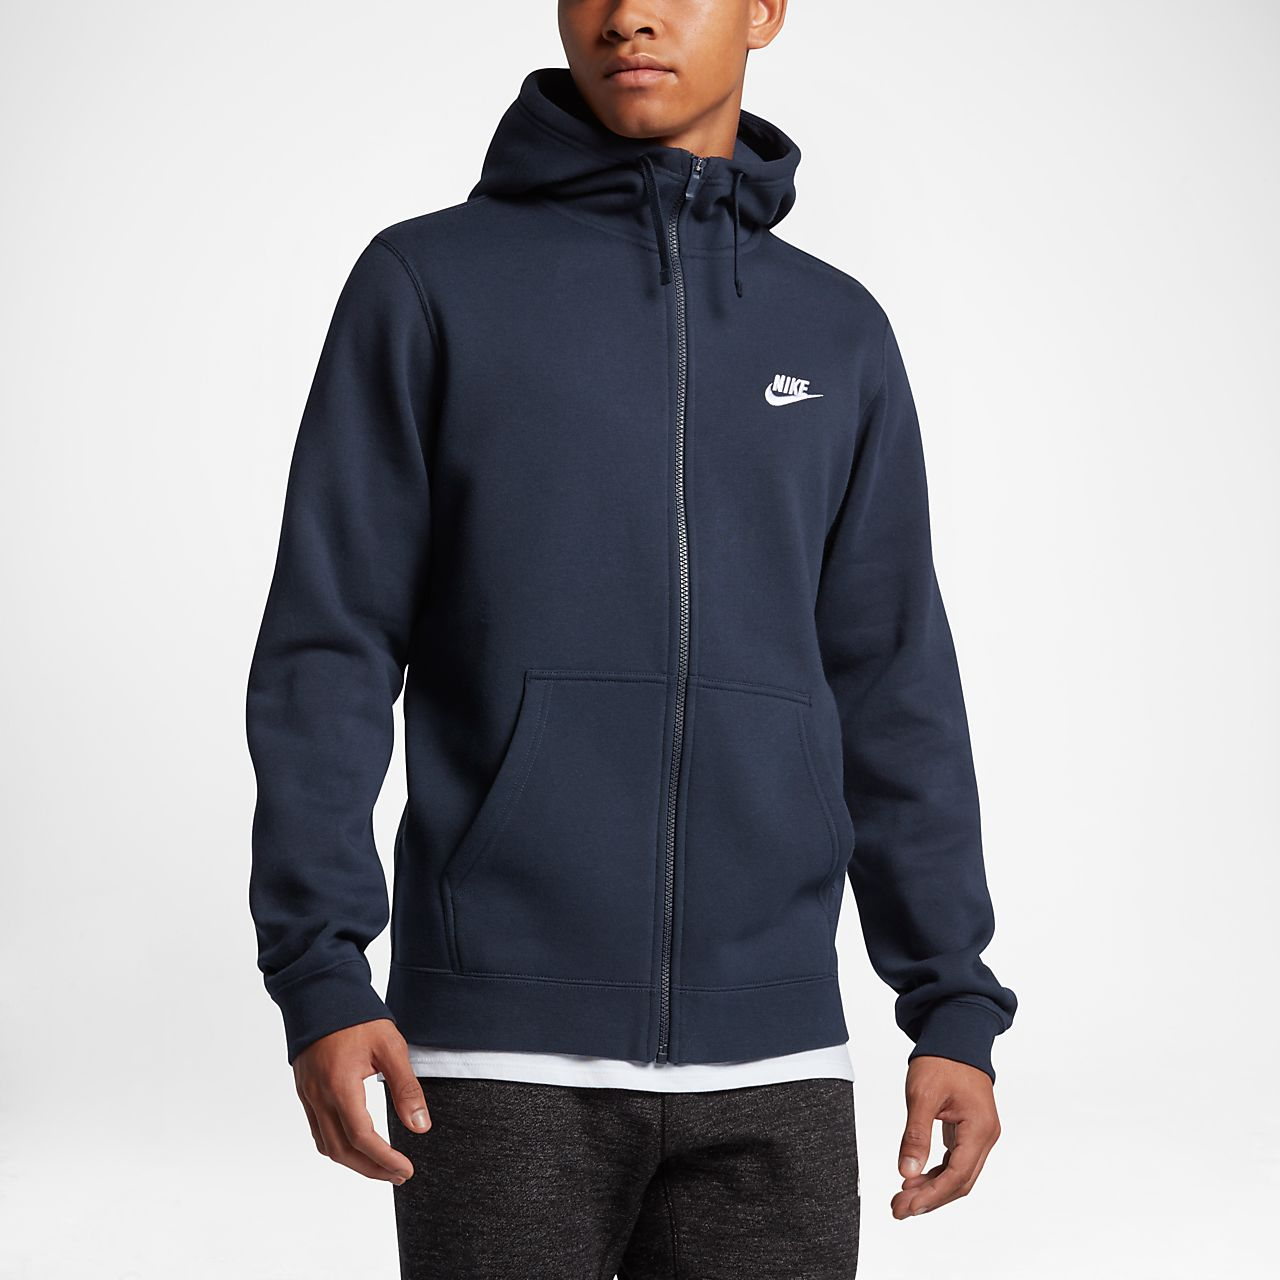 Nike Tech Fleece Jacket